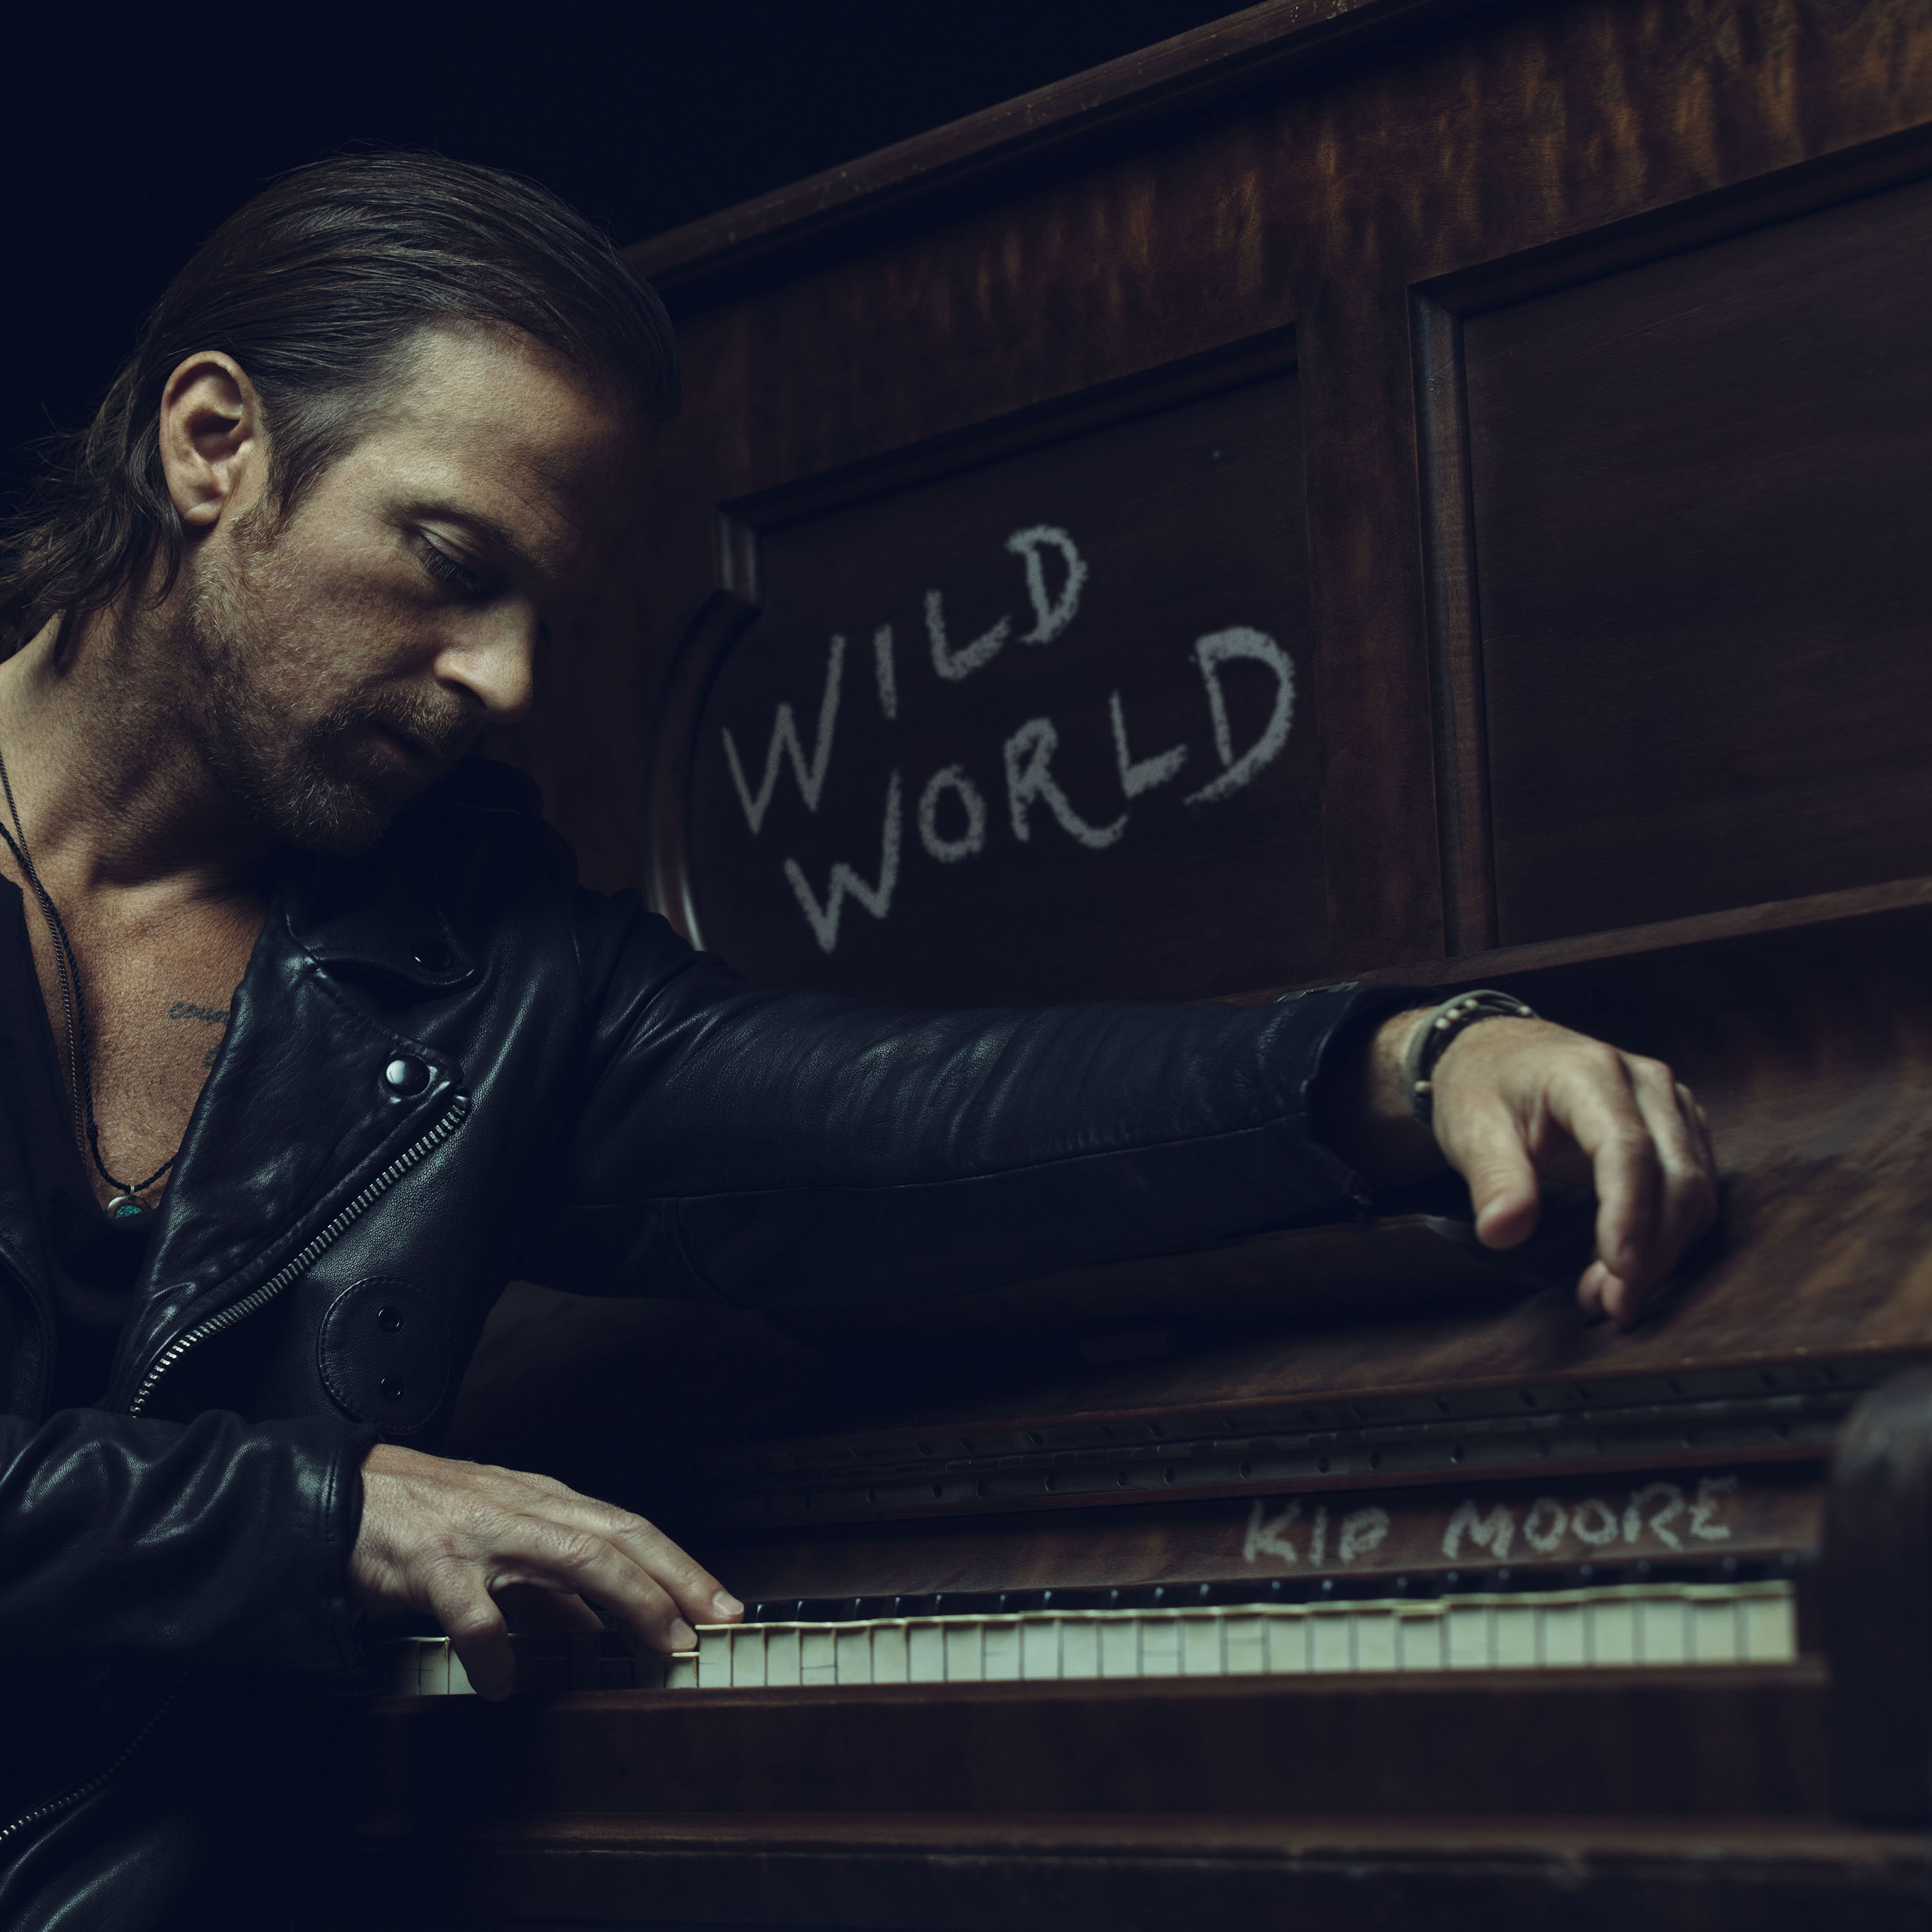 KIP MOORE WILD WORLD ALBUM AUDIO TOOLKIT.